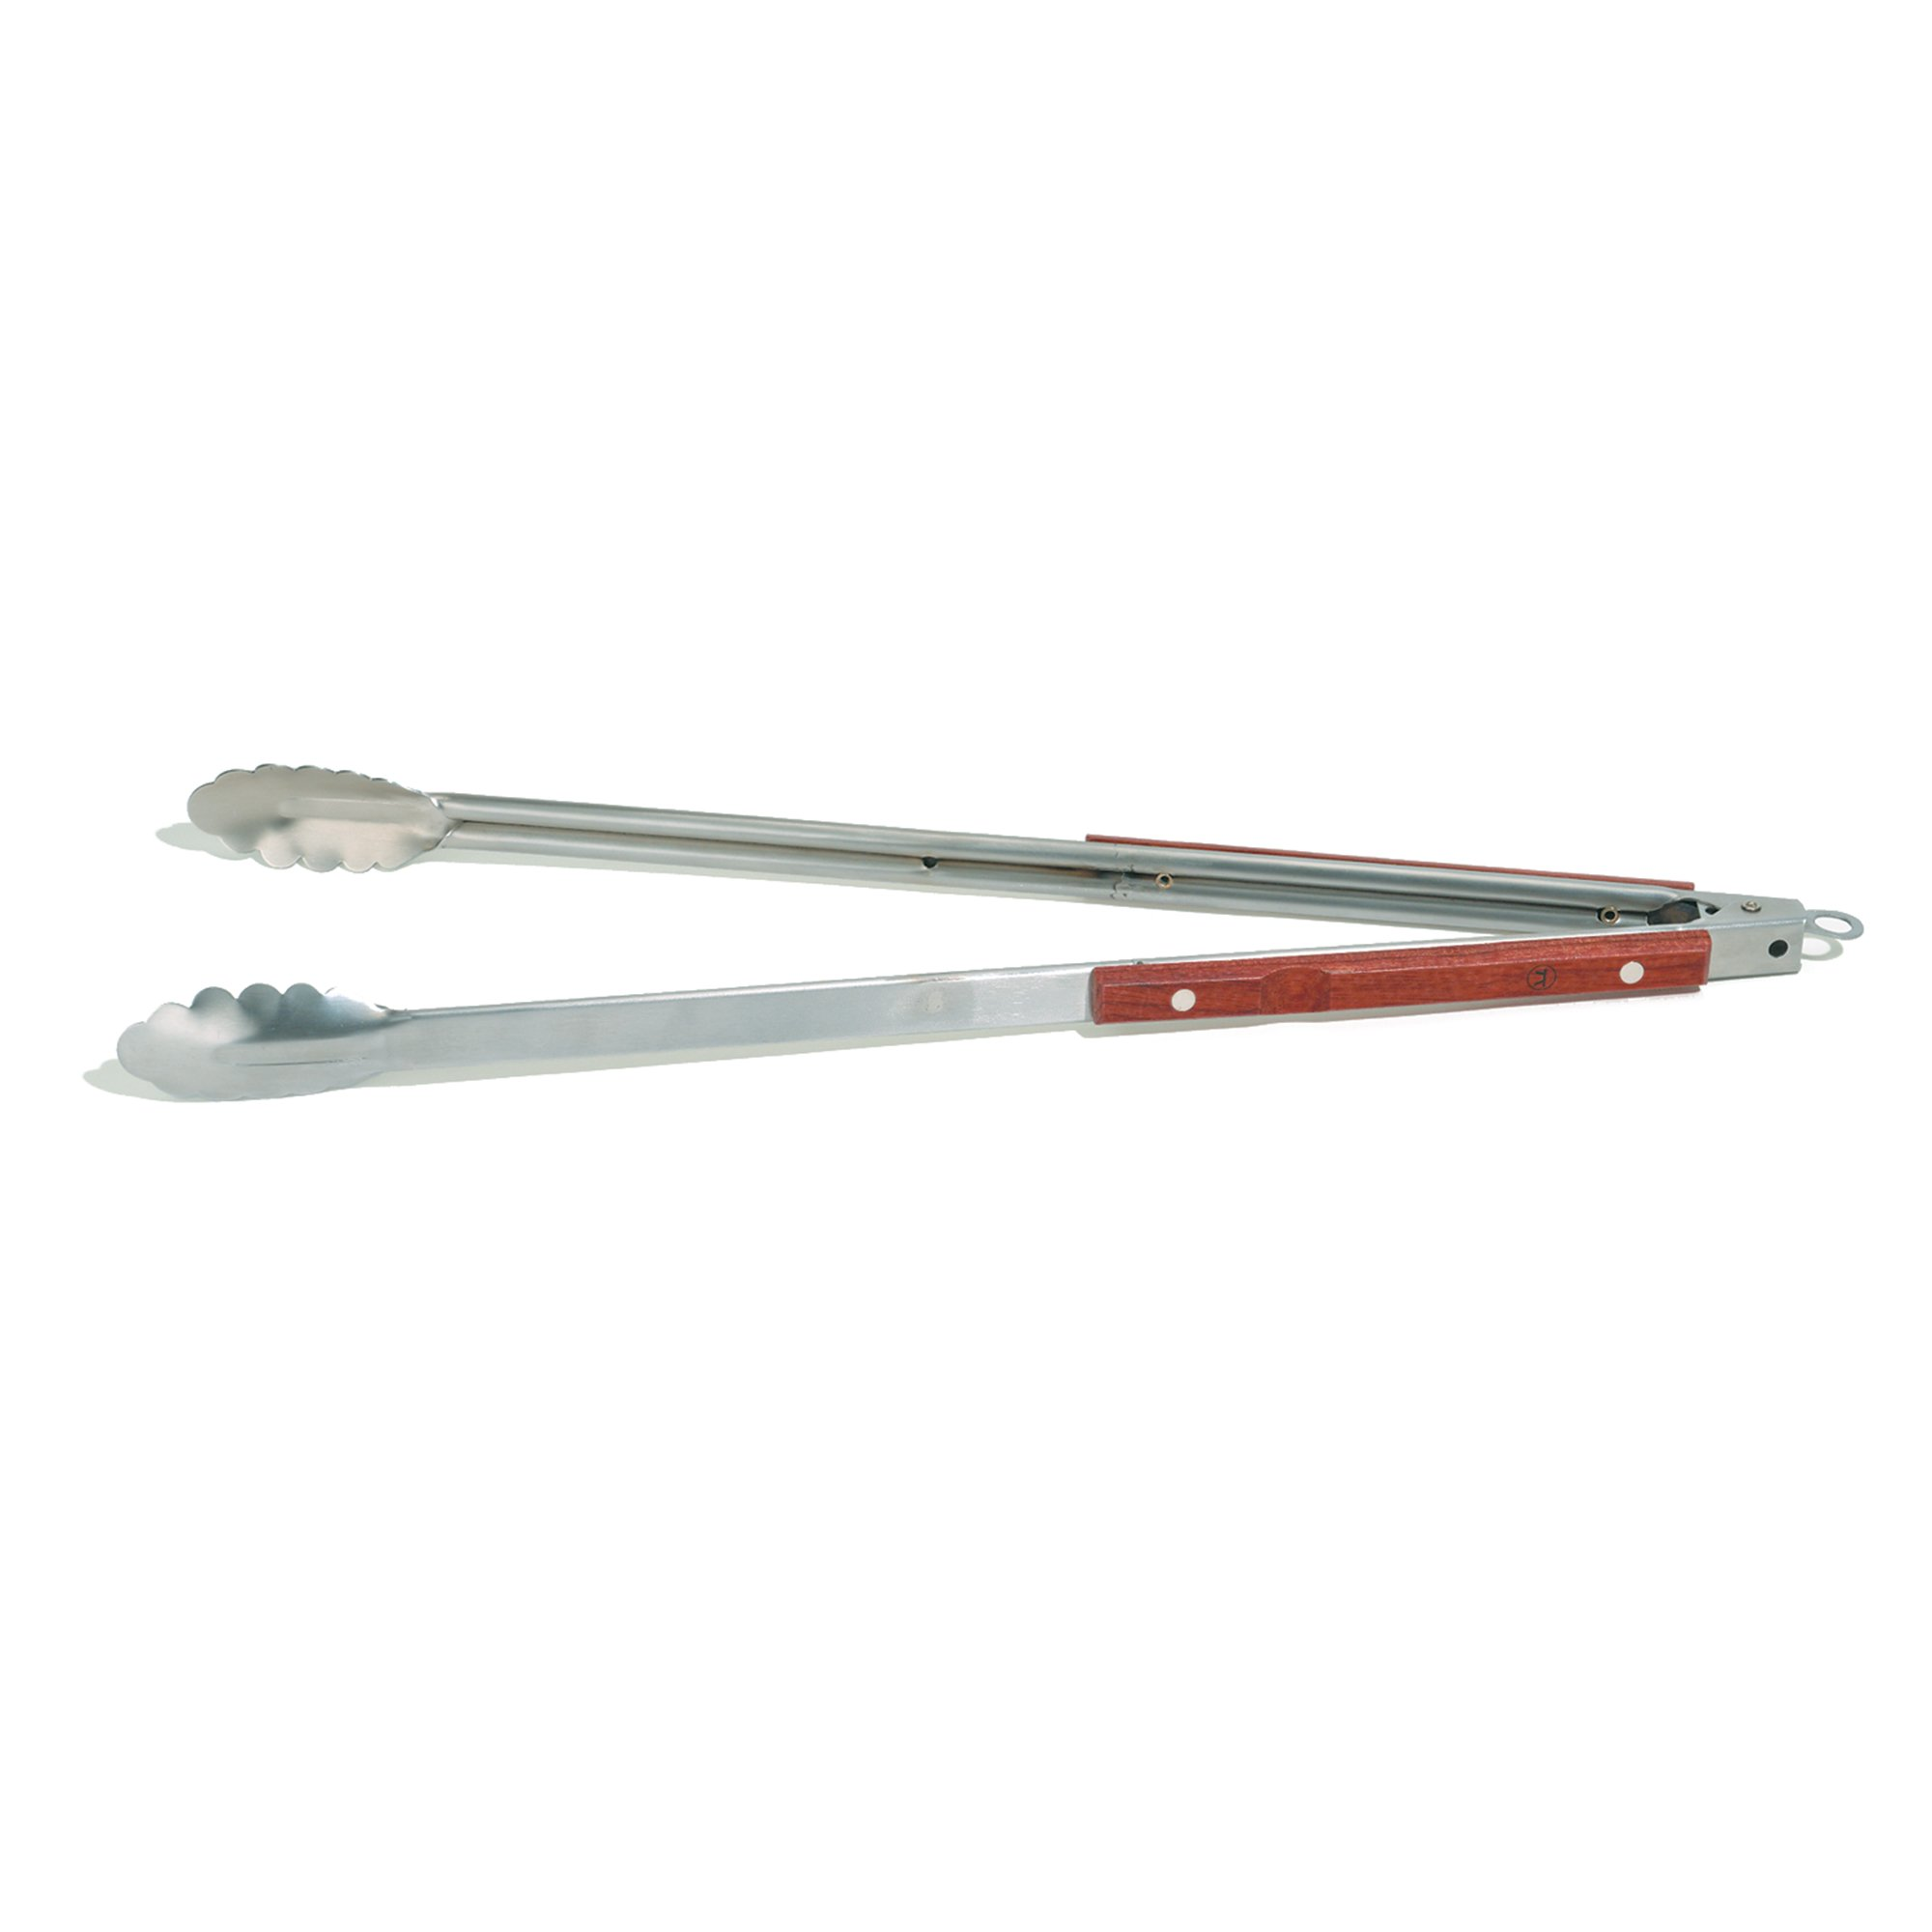 Outset QB22 Rosewood Extra-Long Locking Tongs, 22'' by Outset